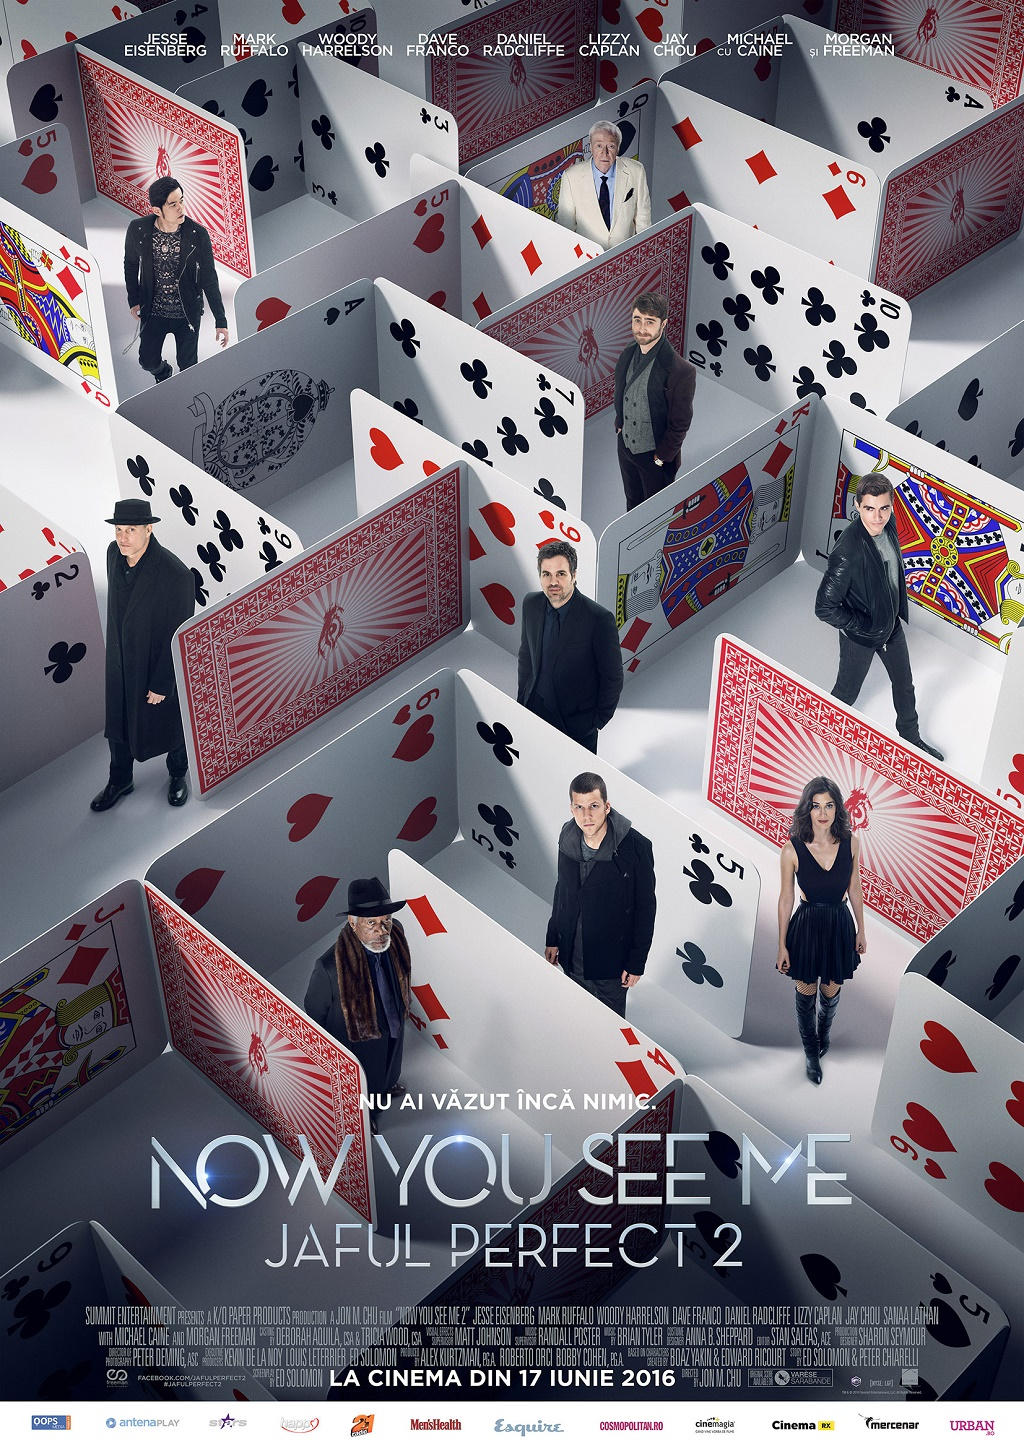 Now You See Me Jaful perfect 2 a cucerit box office-ul romanesc